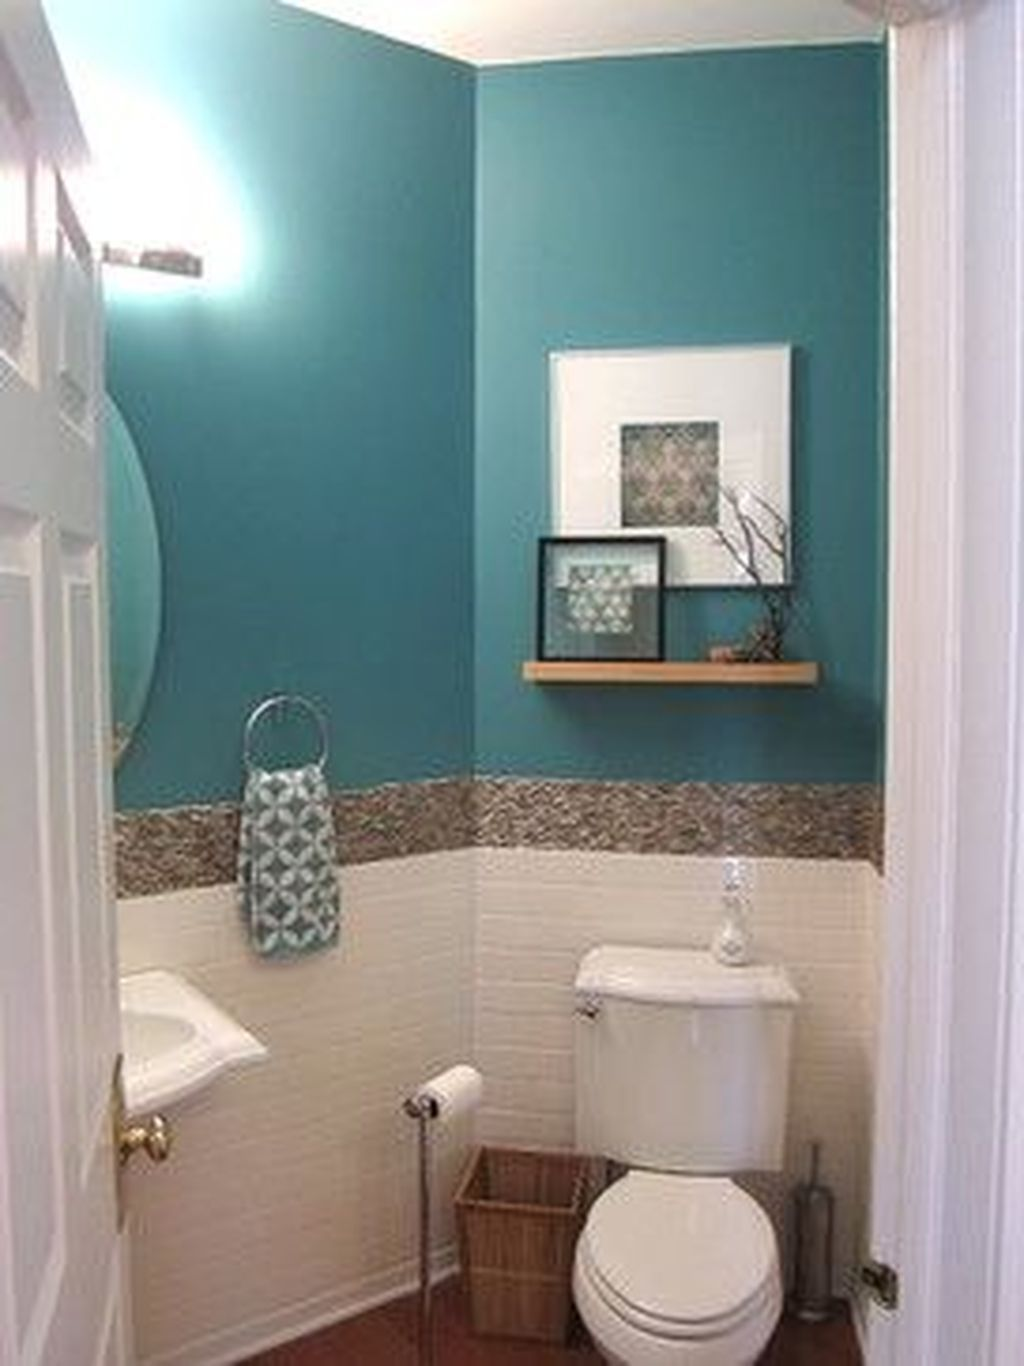 Fabulous Bathroom Decor Ideas With Coastal Style 19